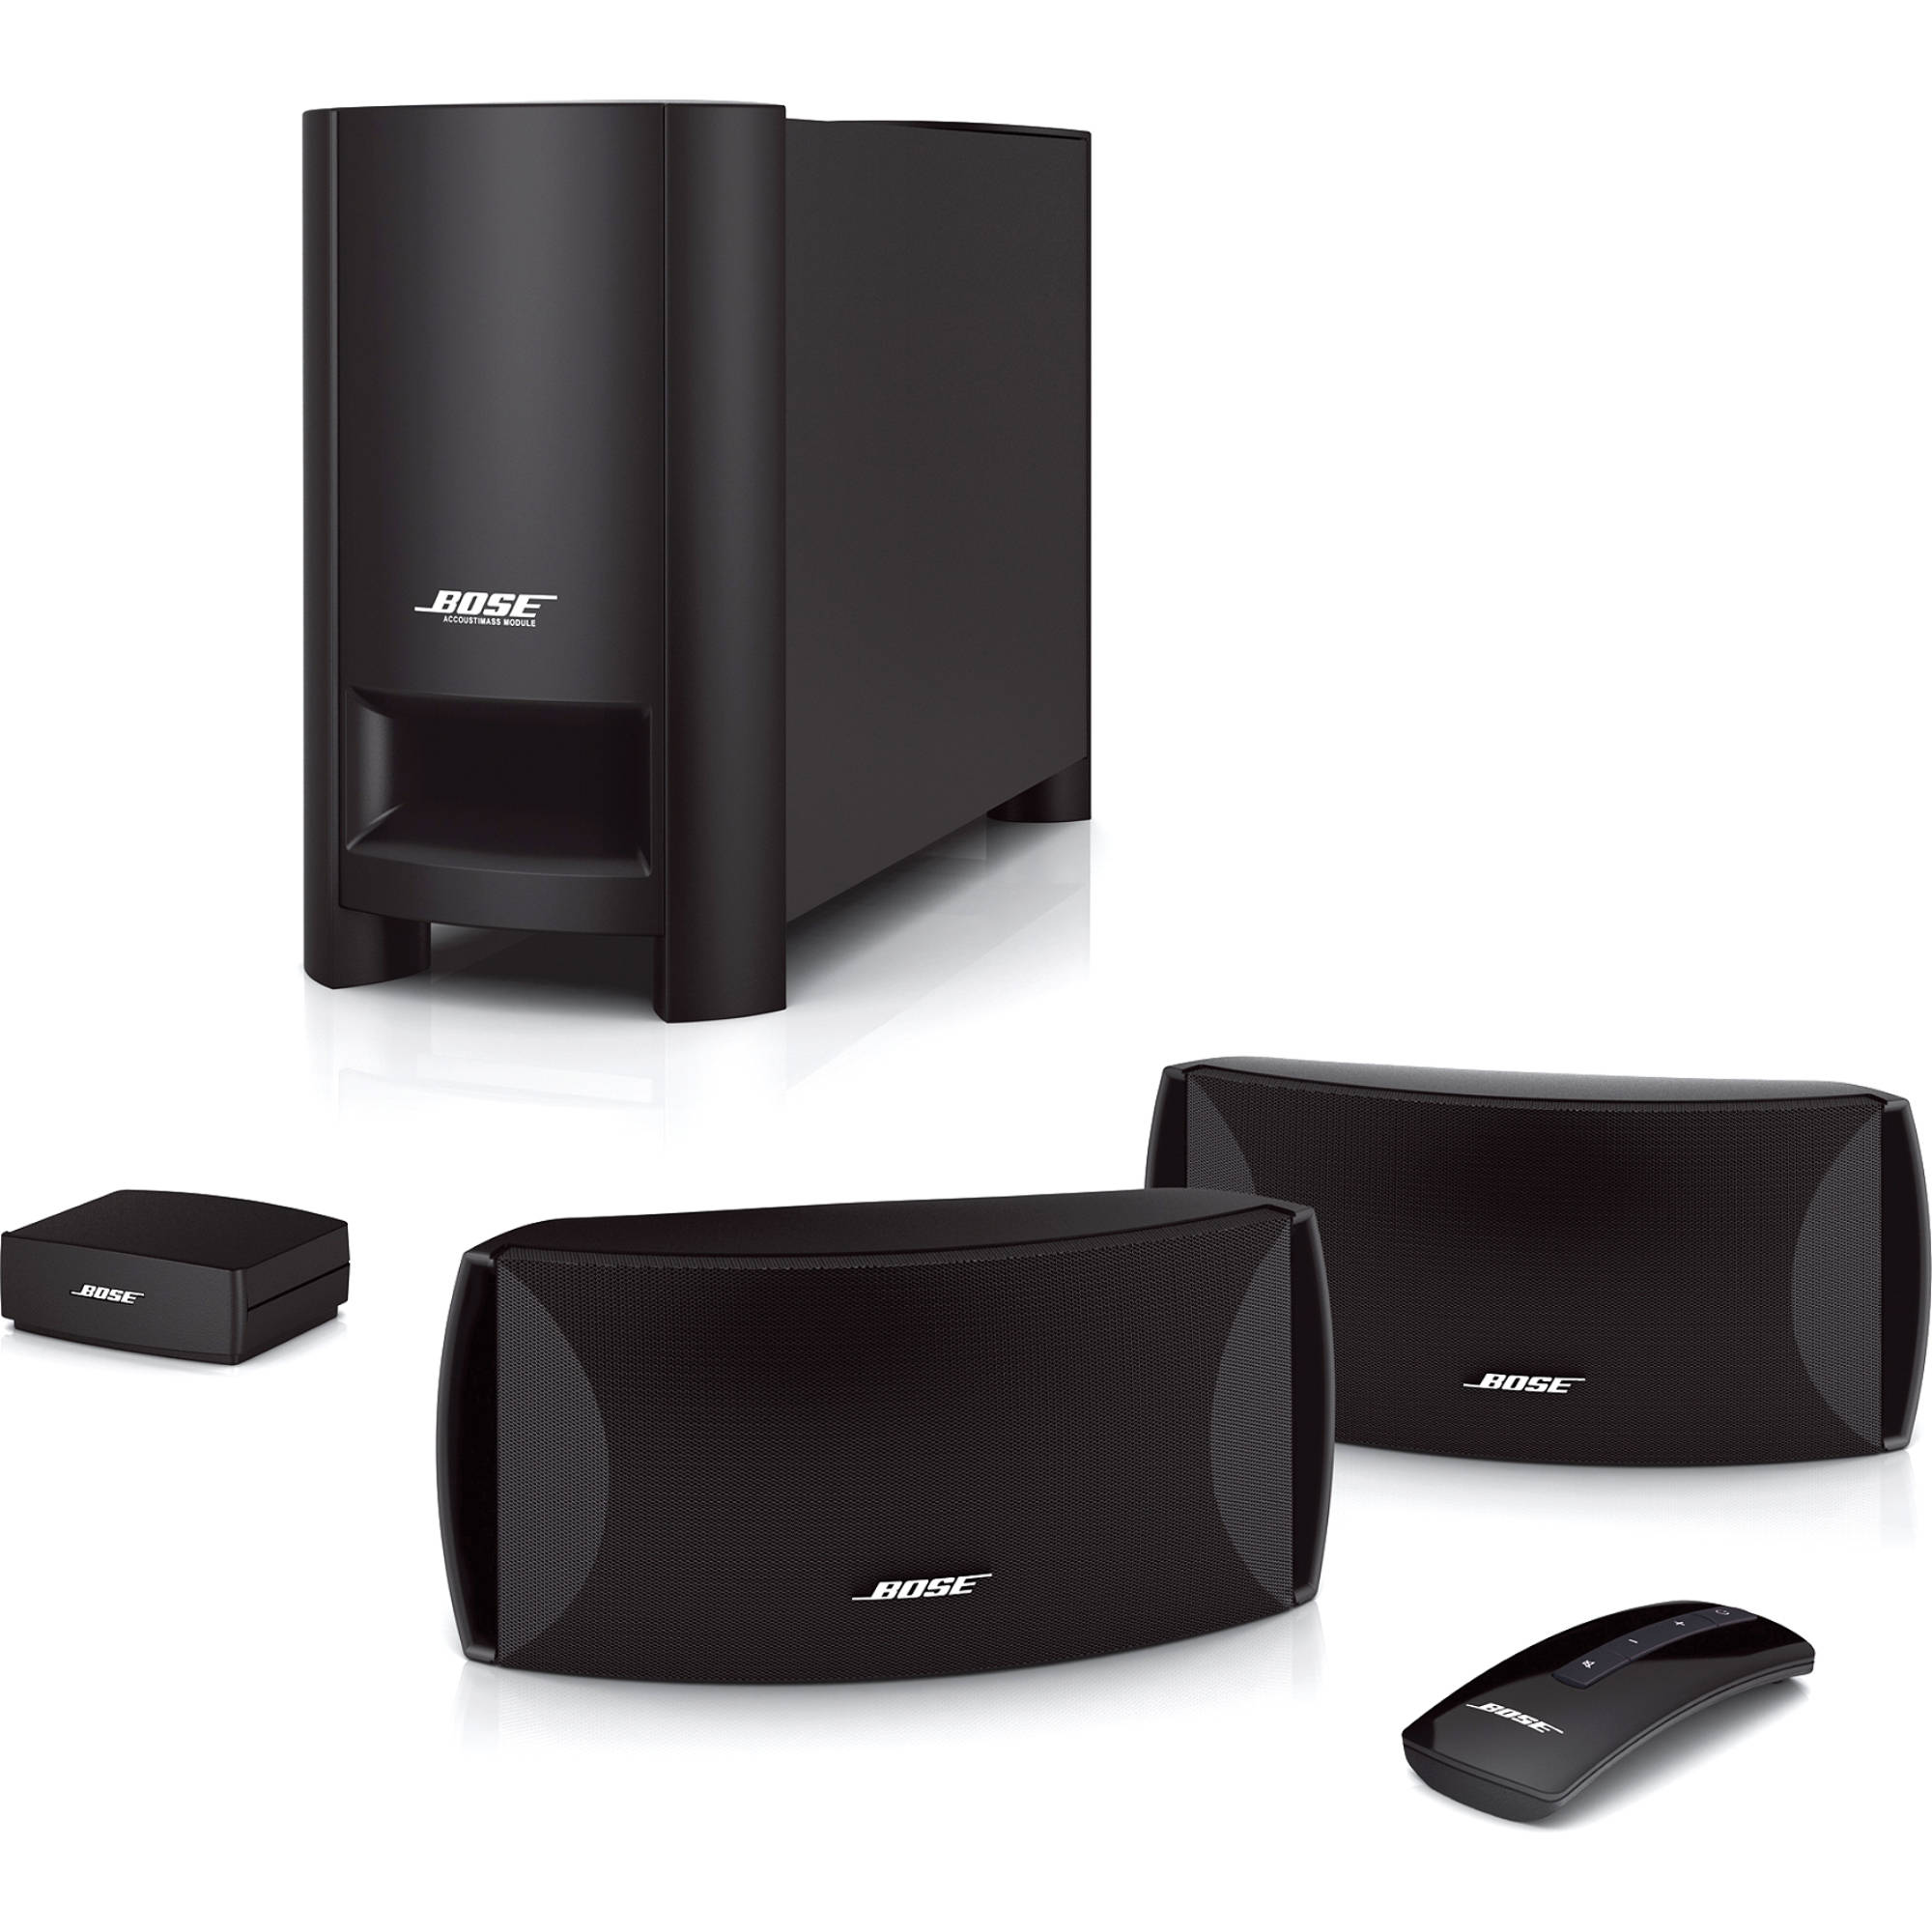 bose cinemate series ii digital home theater speaker. Black Bedroom Furniture Sets. Home Design Ideas